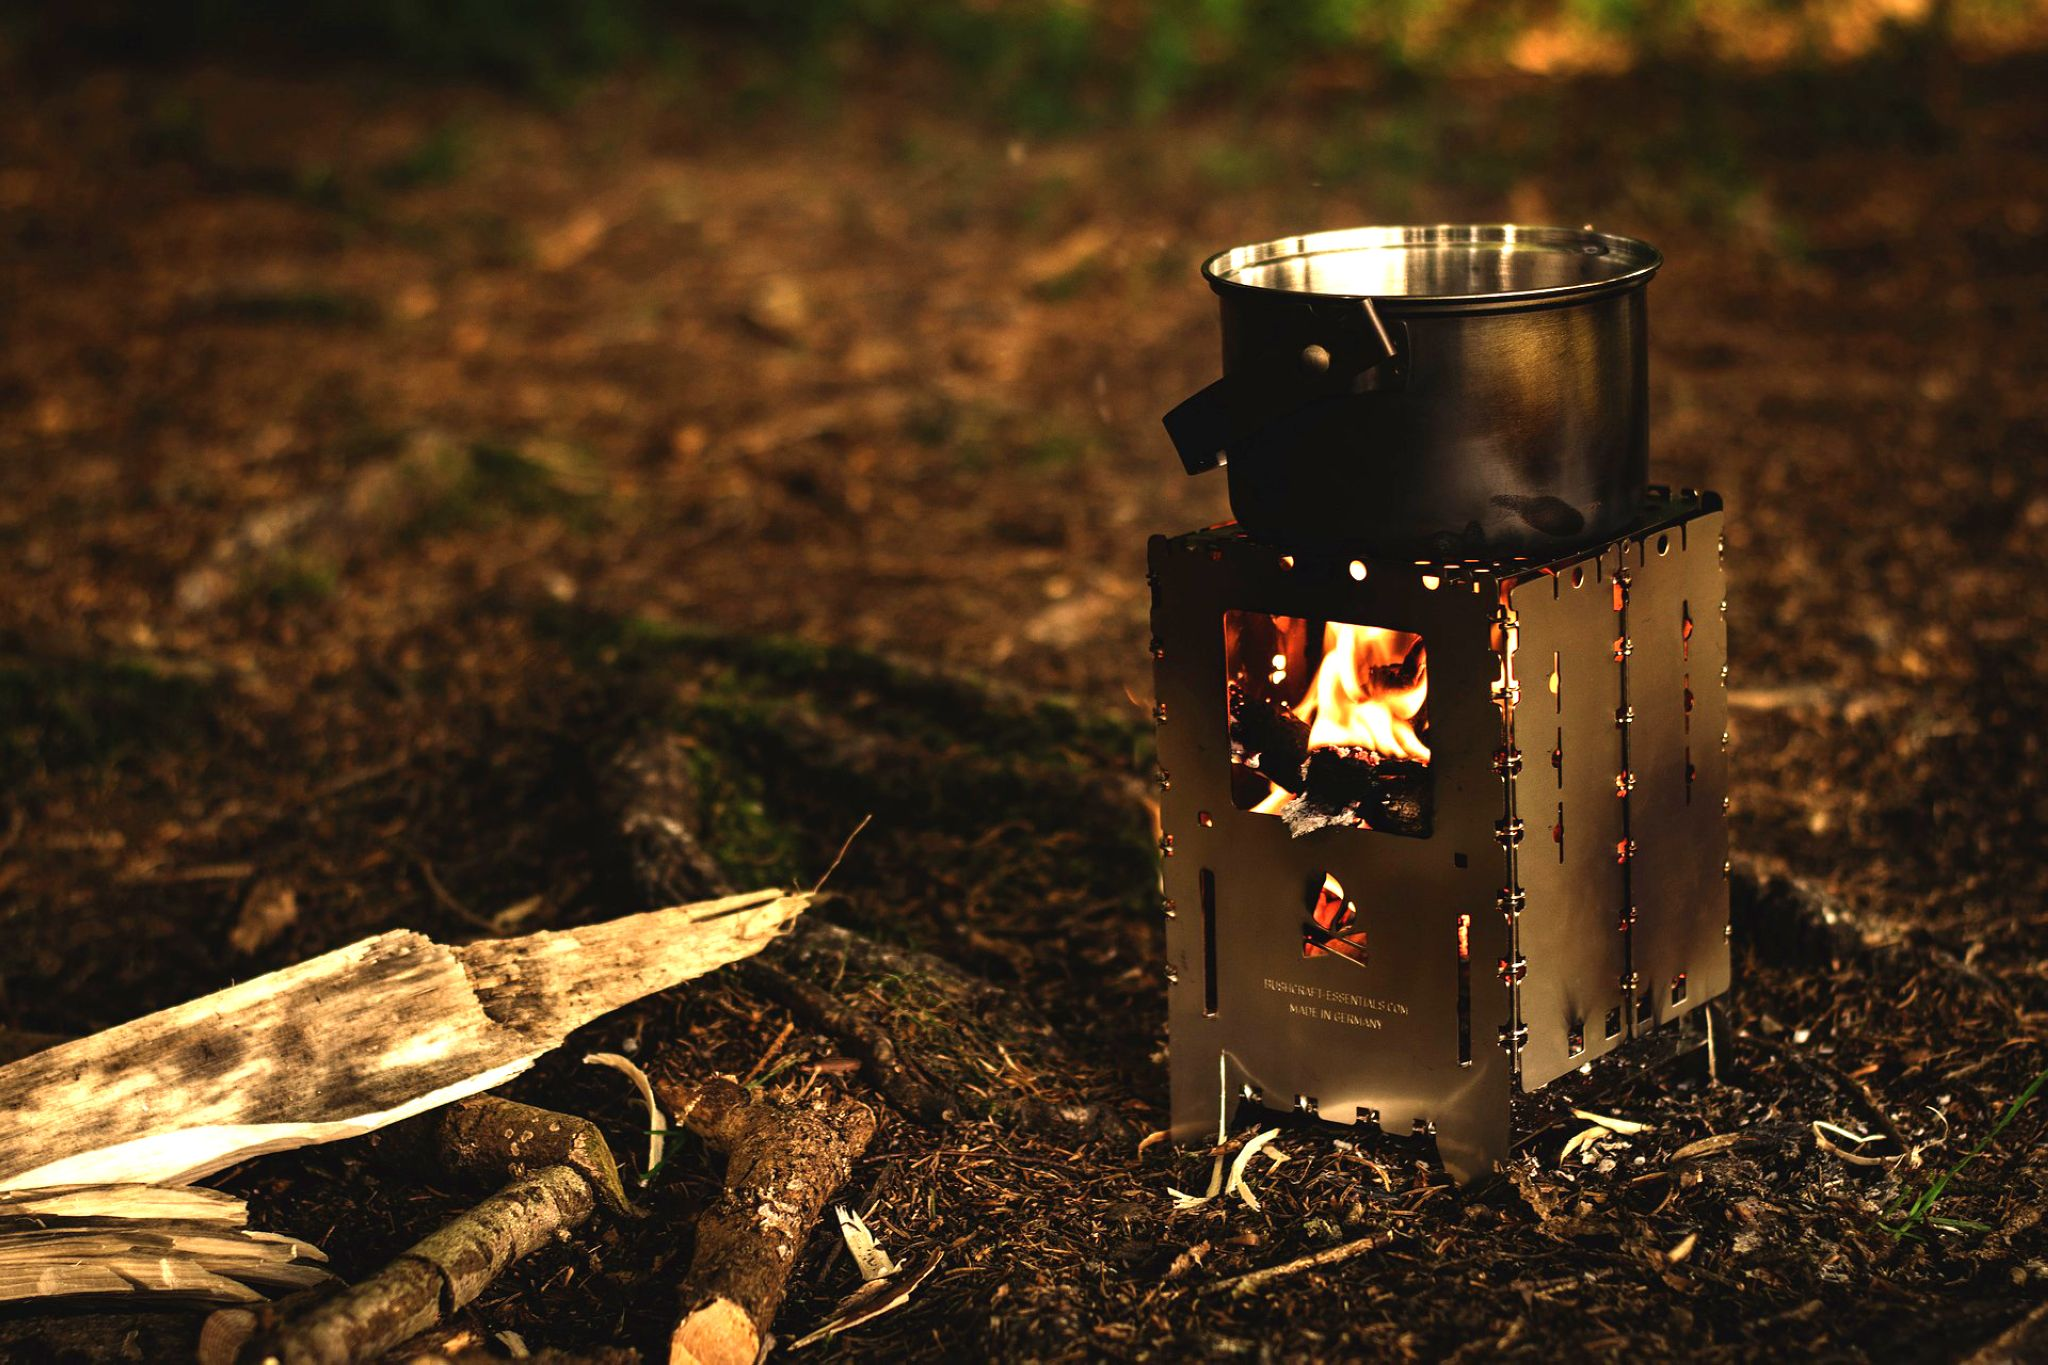 pixabay-lac-madine-meuse-grand-est-lorraine-camping-bbq-barbecue